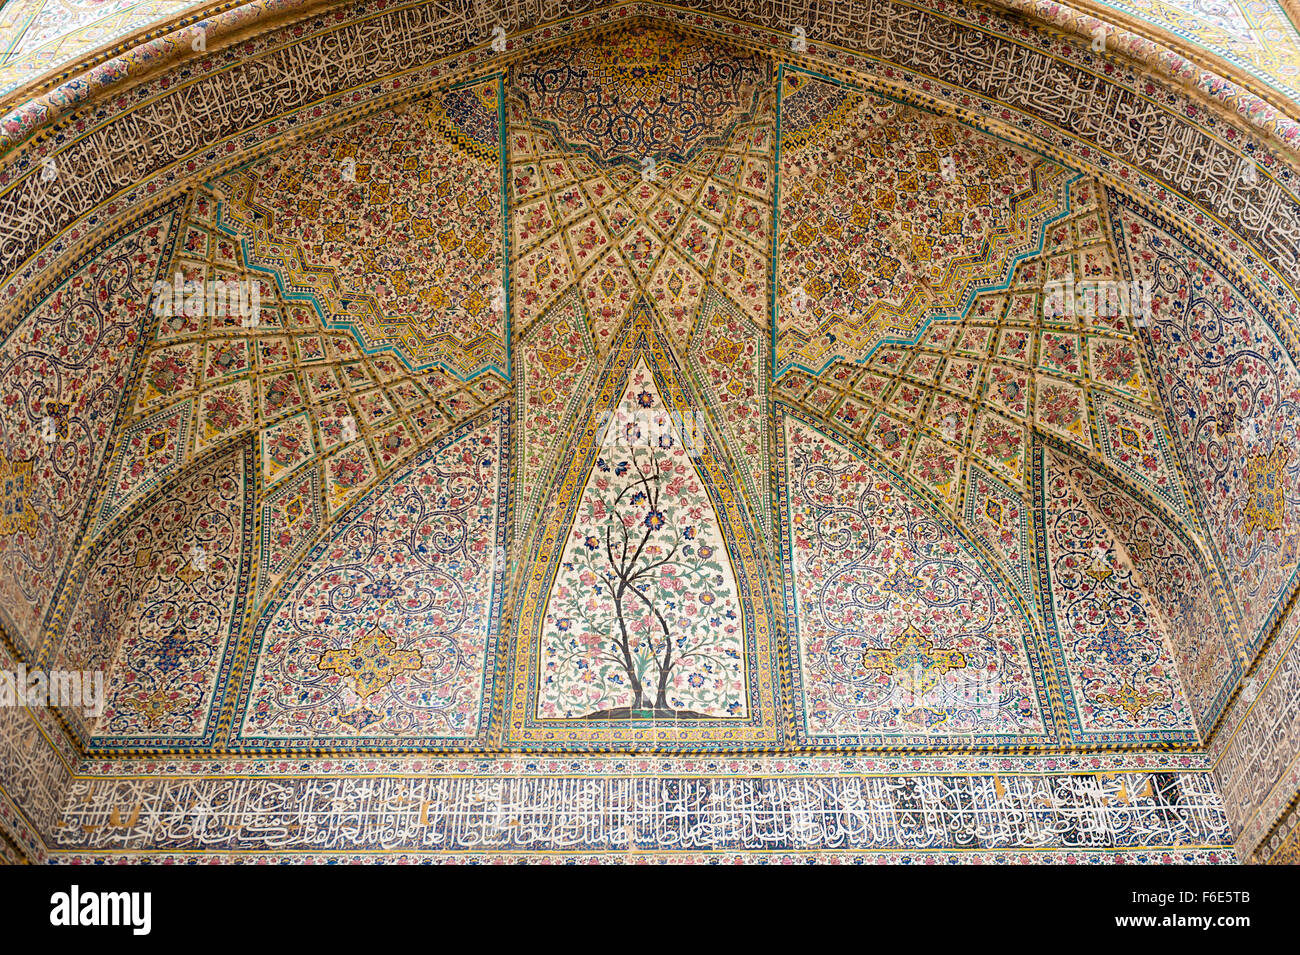 Ceiling with intricately painted tiles, floral pattern, Vakil Mosque, Shiraz, Iran - Stock Image